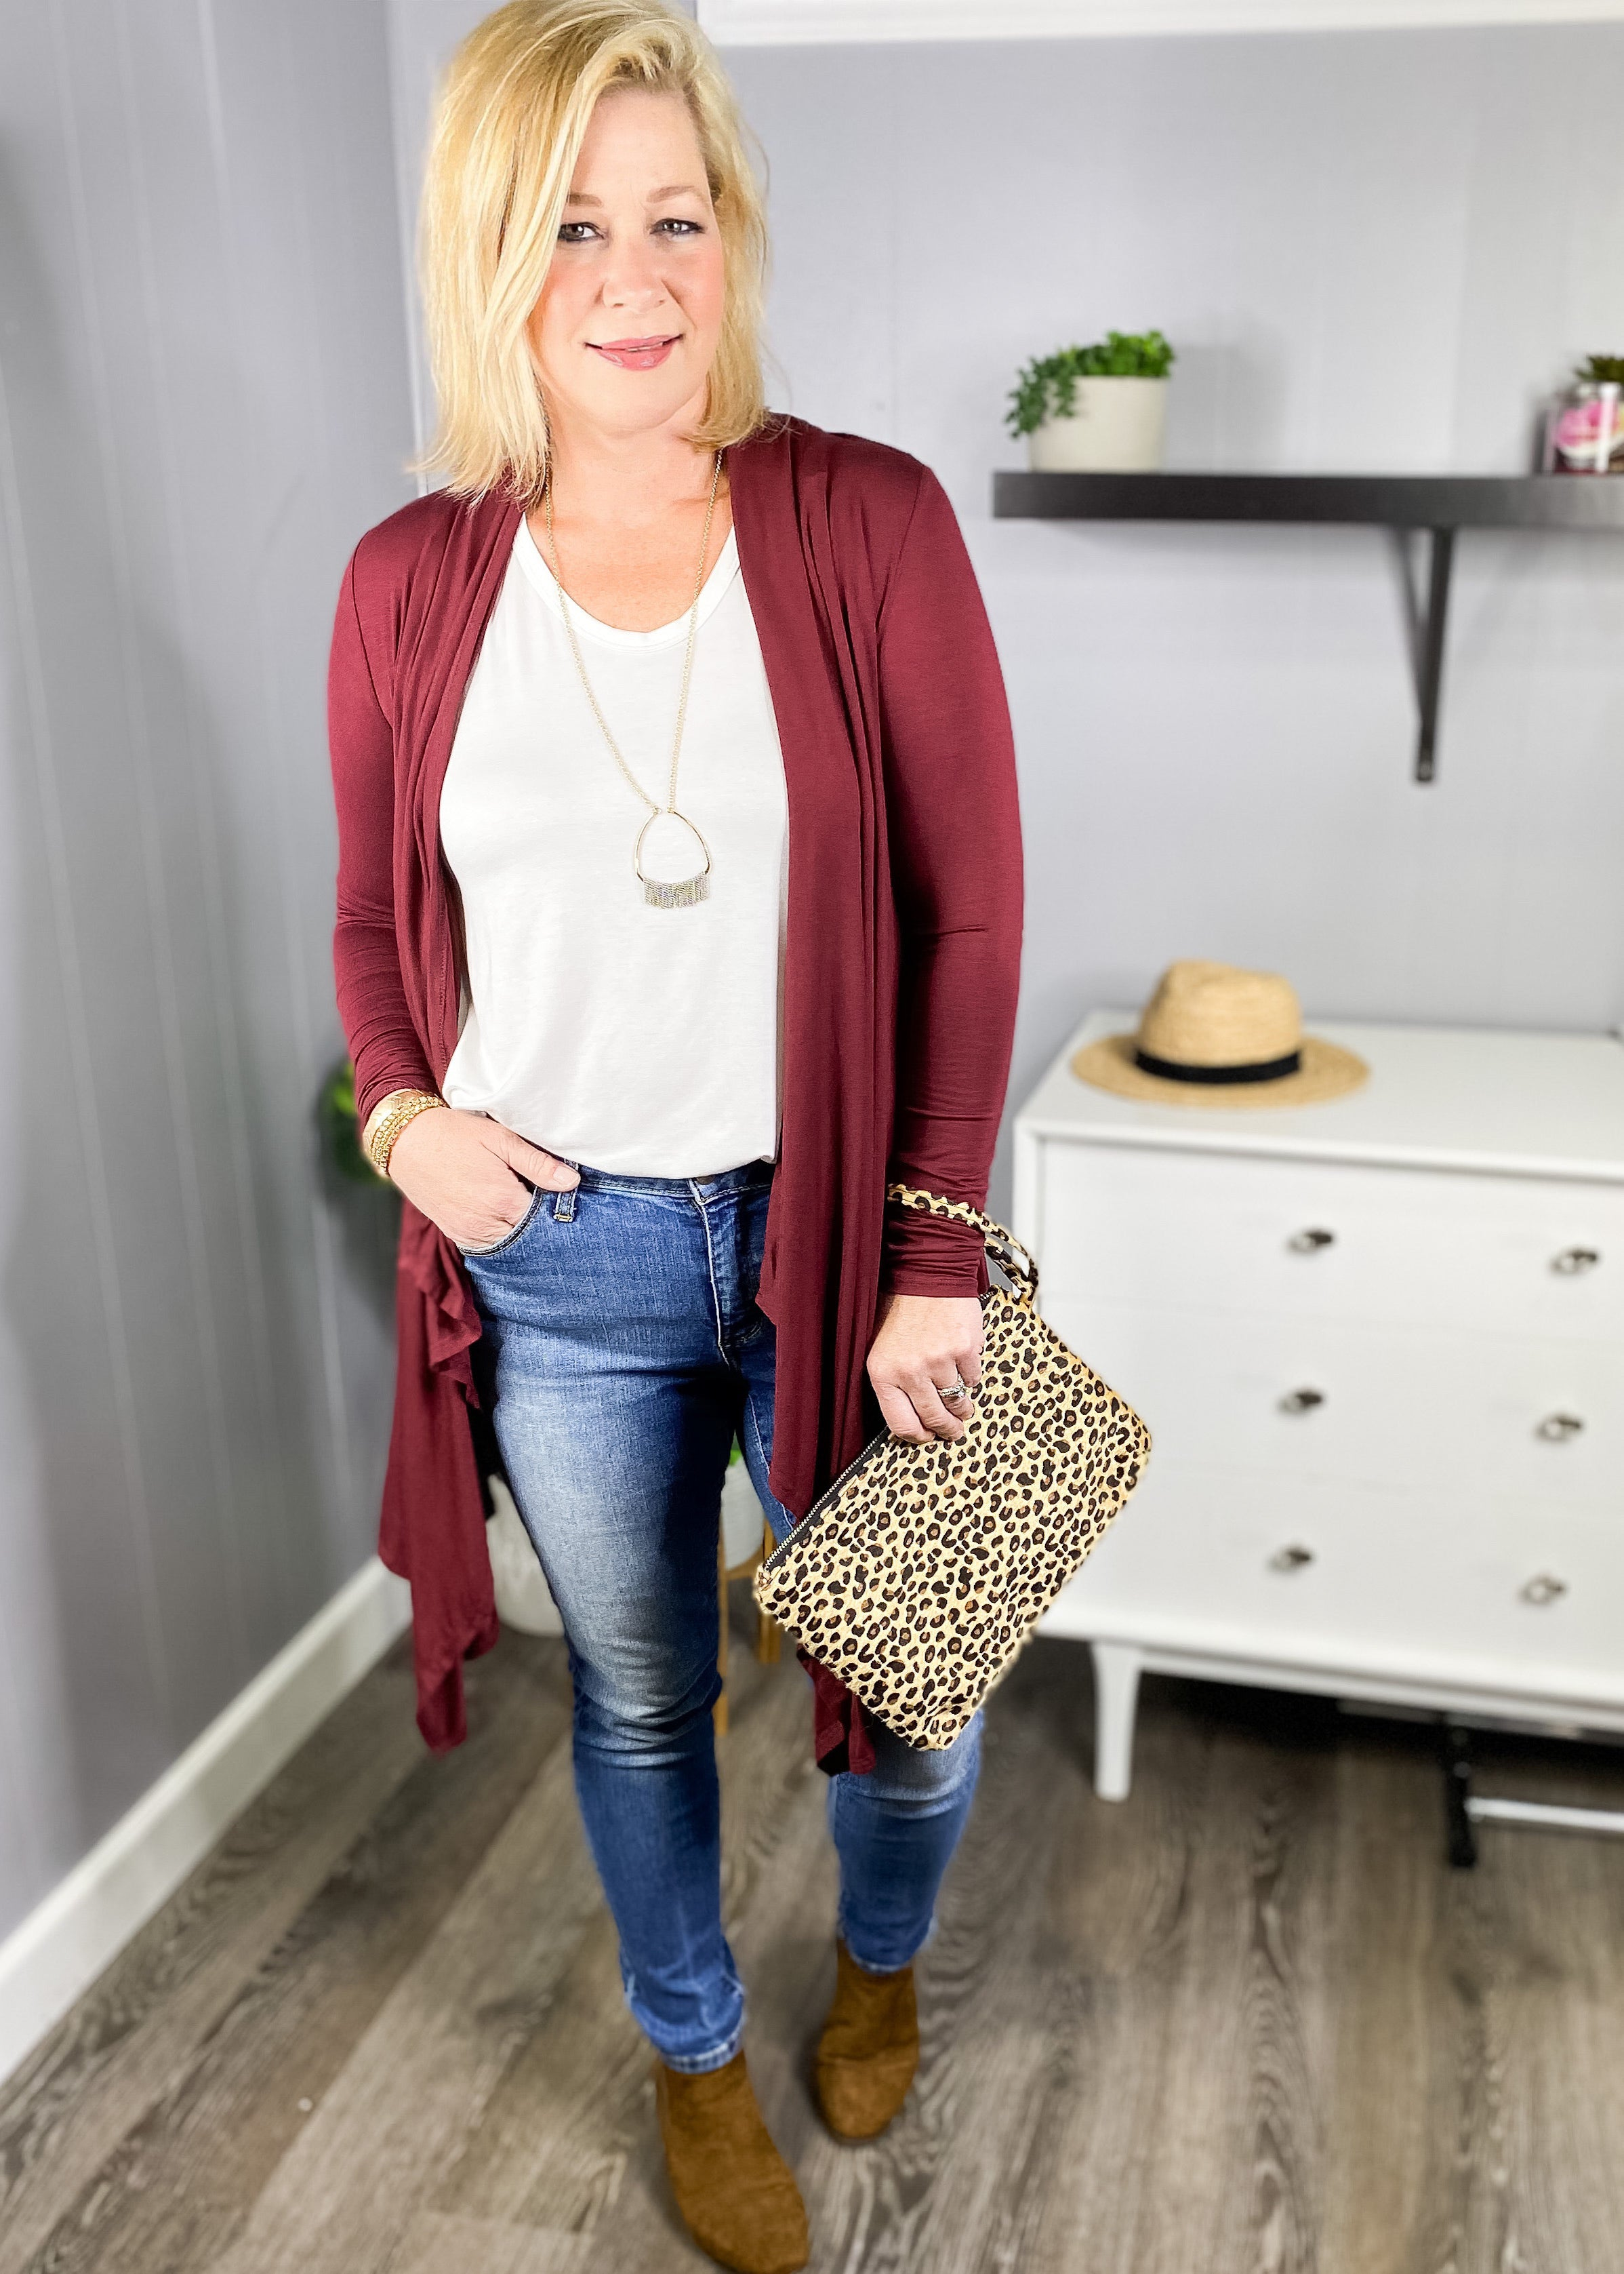 Lightweight cardigan with open front available in wine and olive, shown with our leopard wristlet, at L.E & CO Boutique.